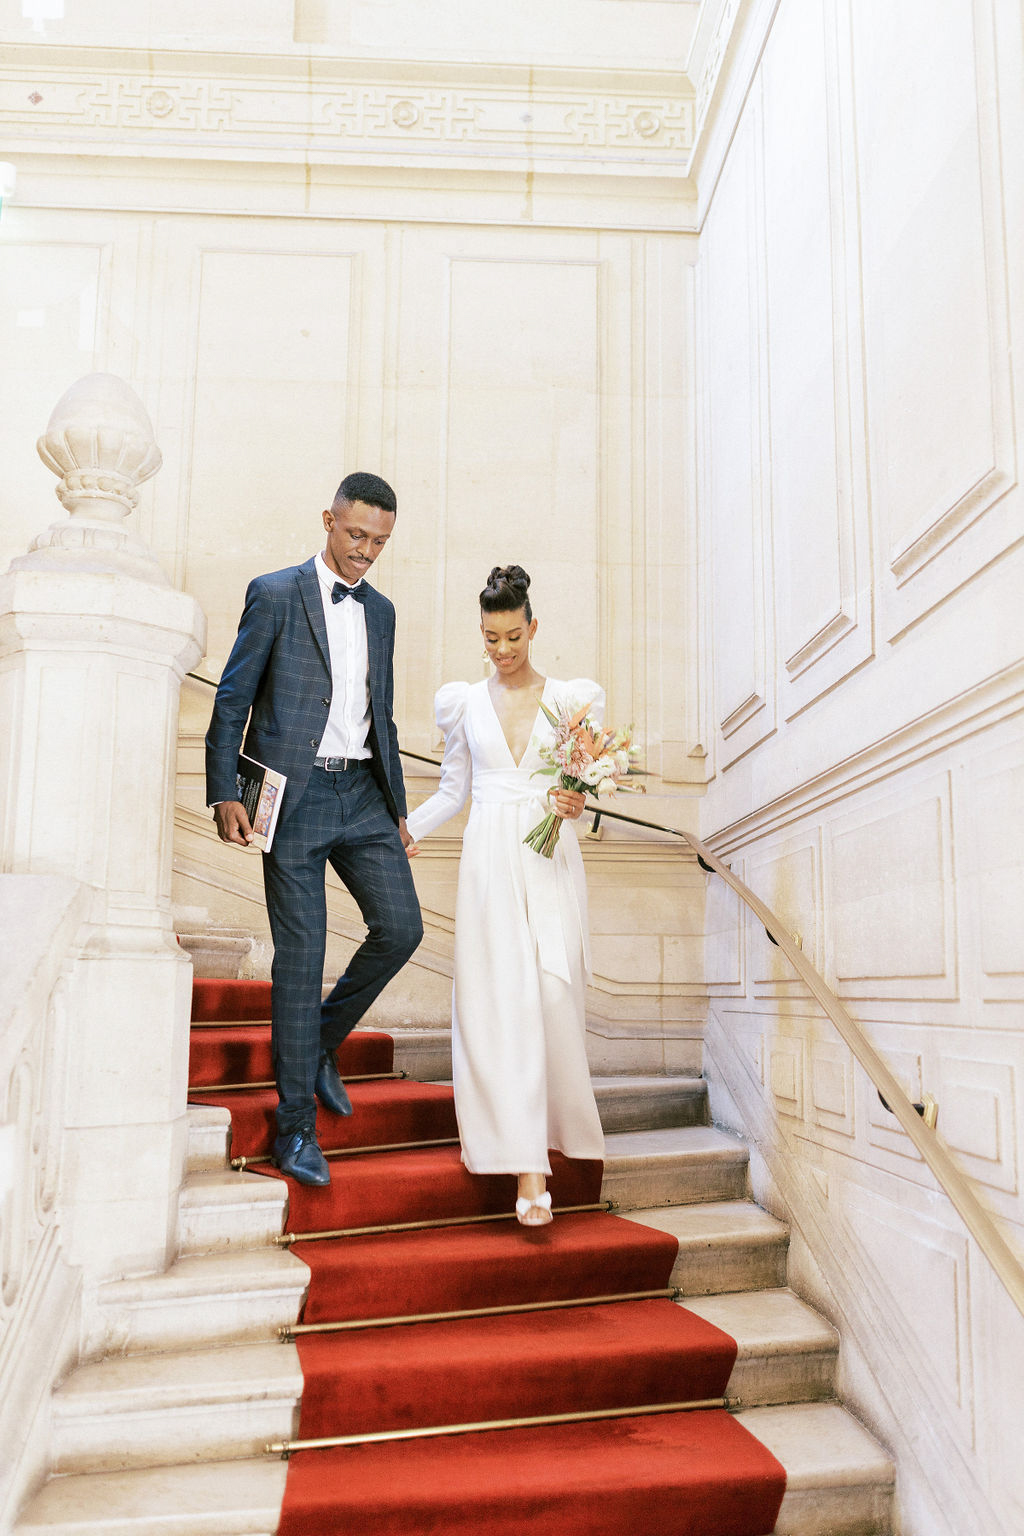 couple walking down red carpeted stairs together